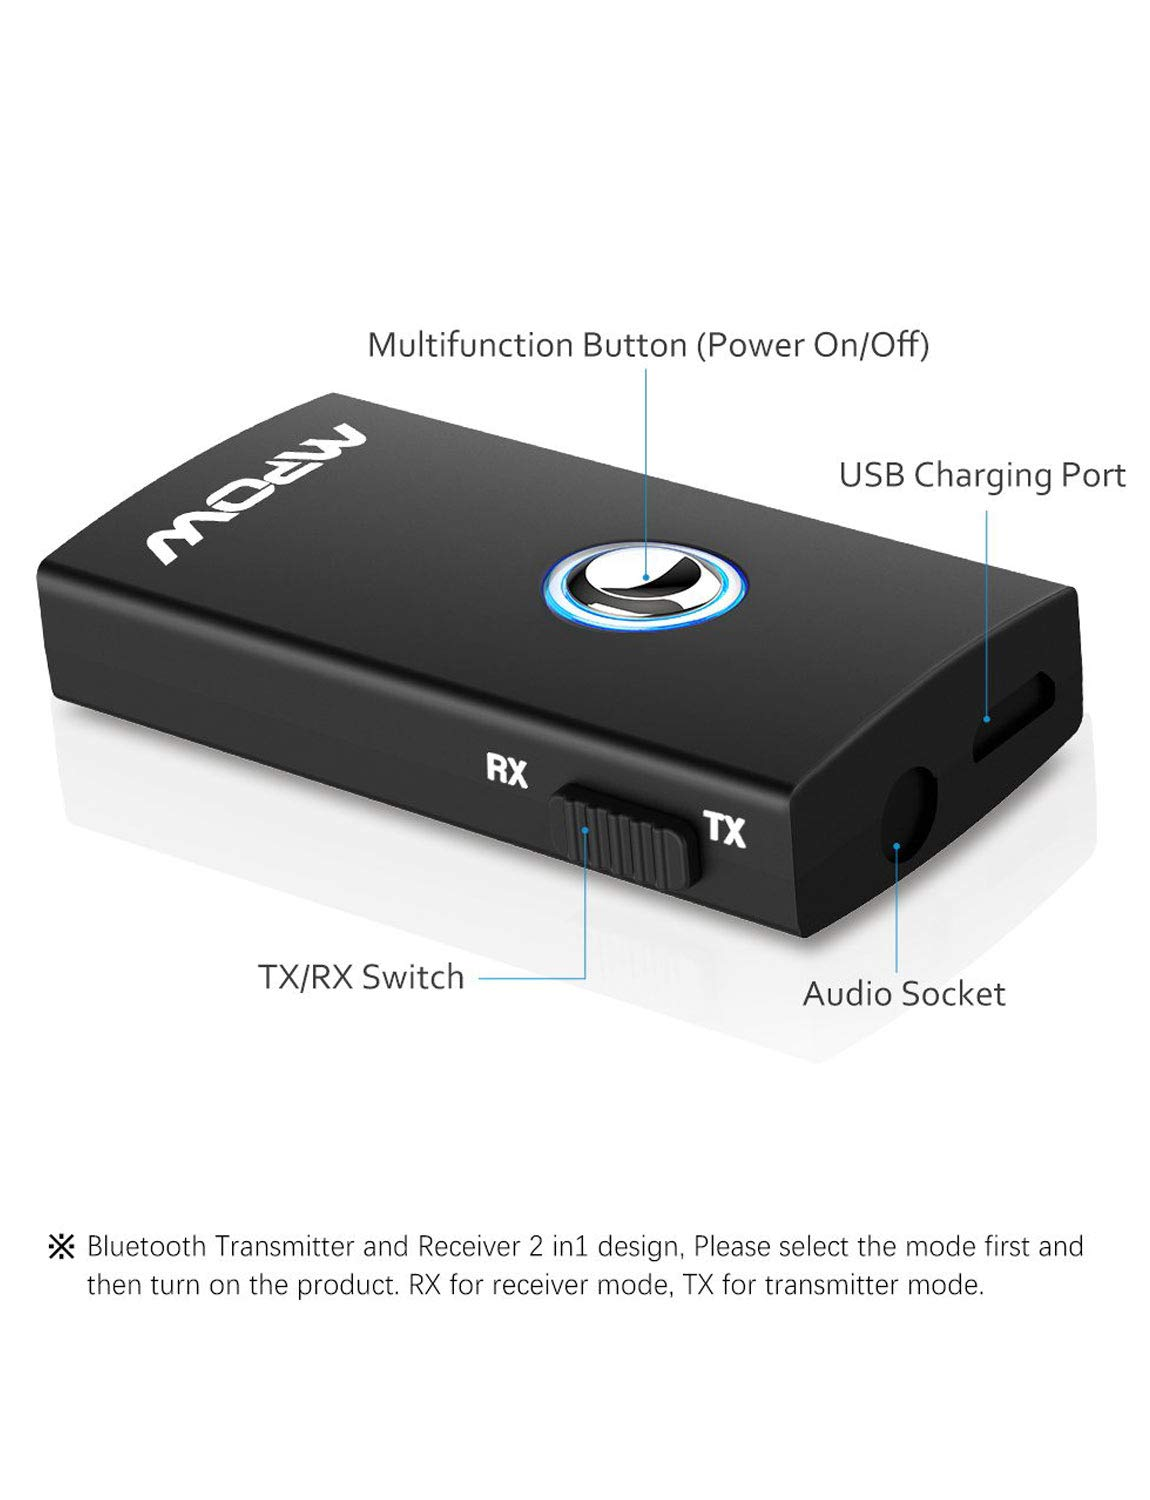 Mpow Bluetooth Transmitter Receiver,Bluetooth Transmitter for TV, Bluetooth Receiver for Car Home Stereo System(A2DP/AVRCP), 2-in-1 Wireless Portable Bluetooth Kits for CD-Like Music by Mpow (Image #7)